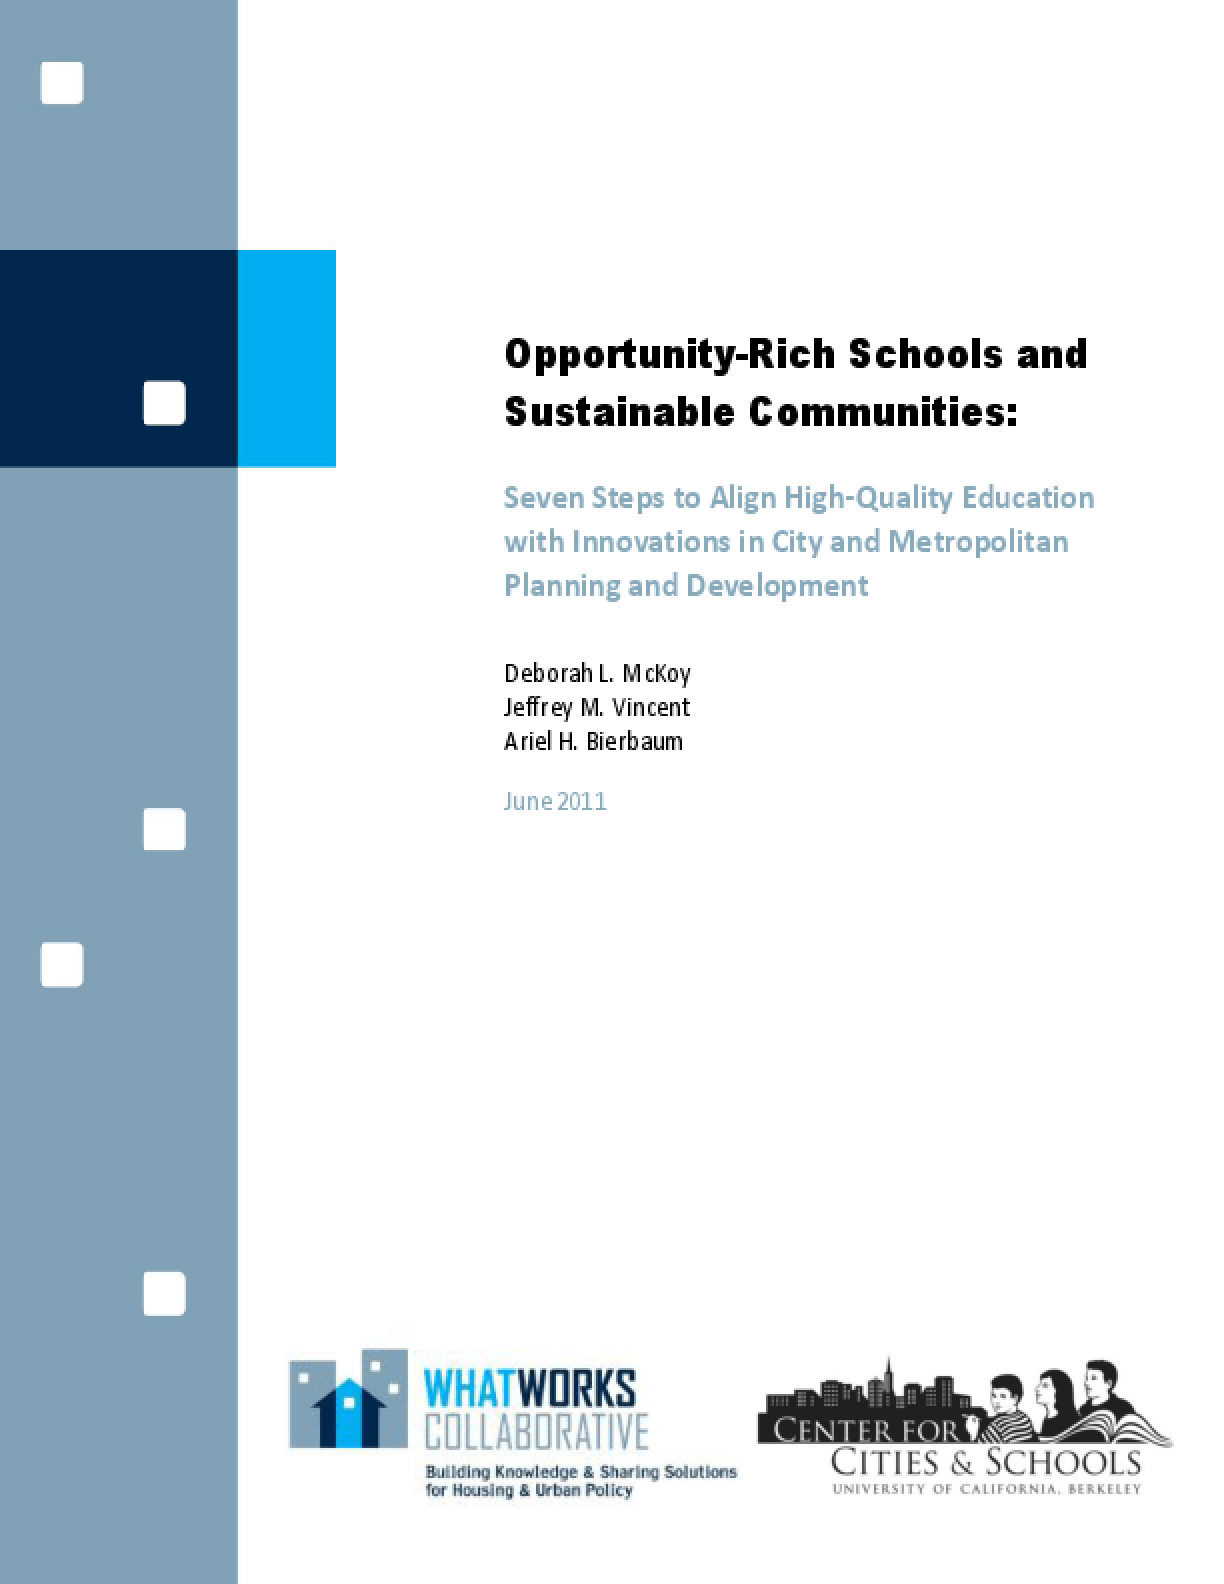 Opportunity-Rich Schools and Sustainable Communities: Seven Steps to Align High-Quality Education With Innovations in City and Metropolitan Planning and Development